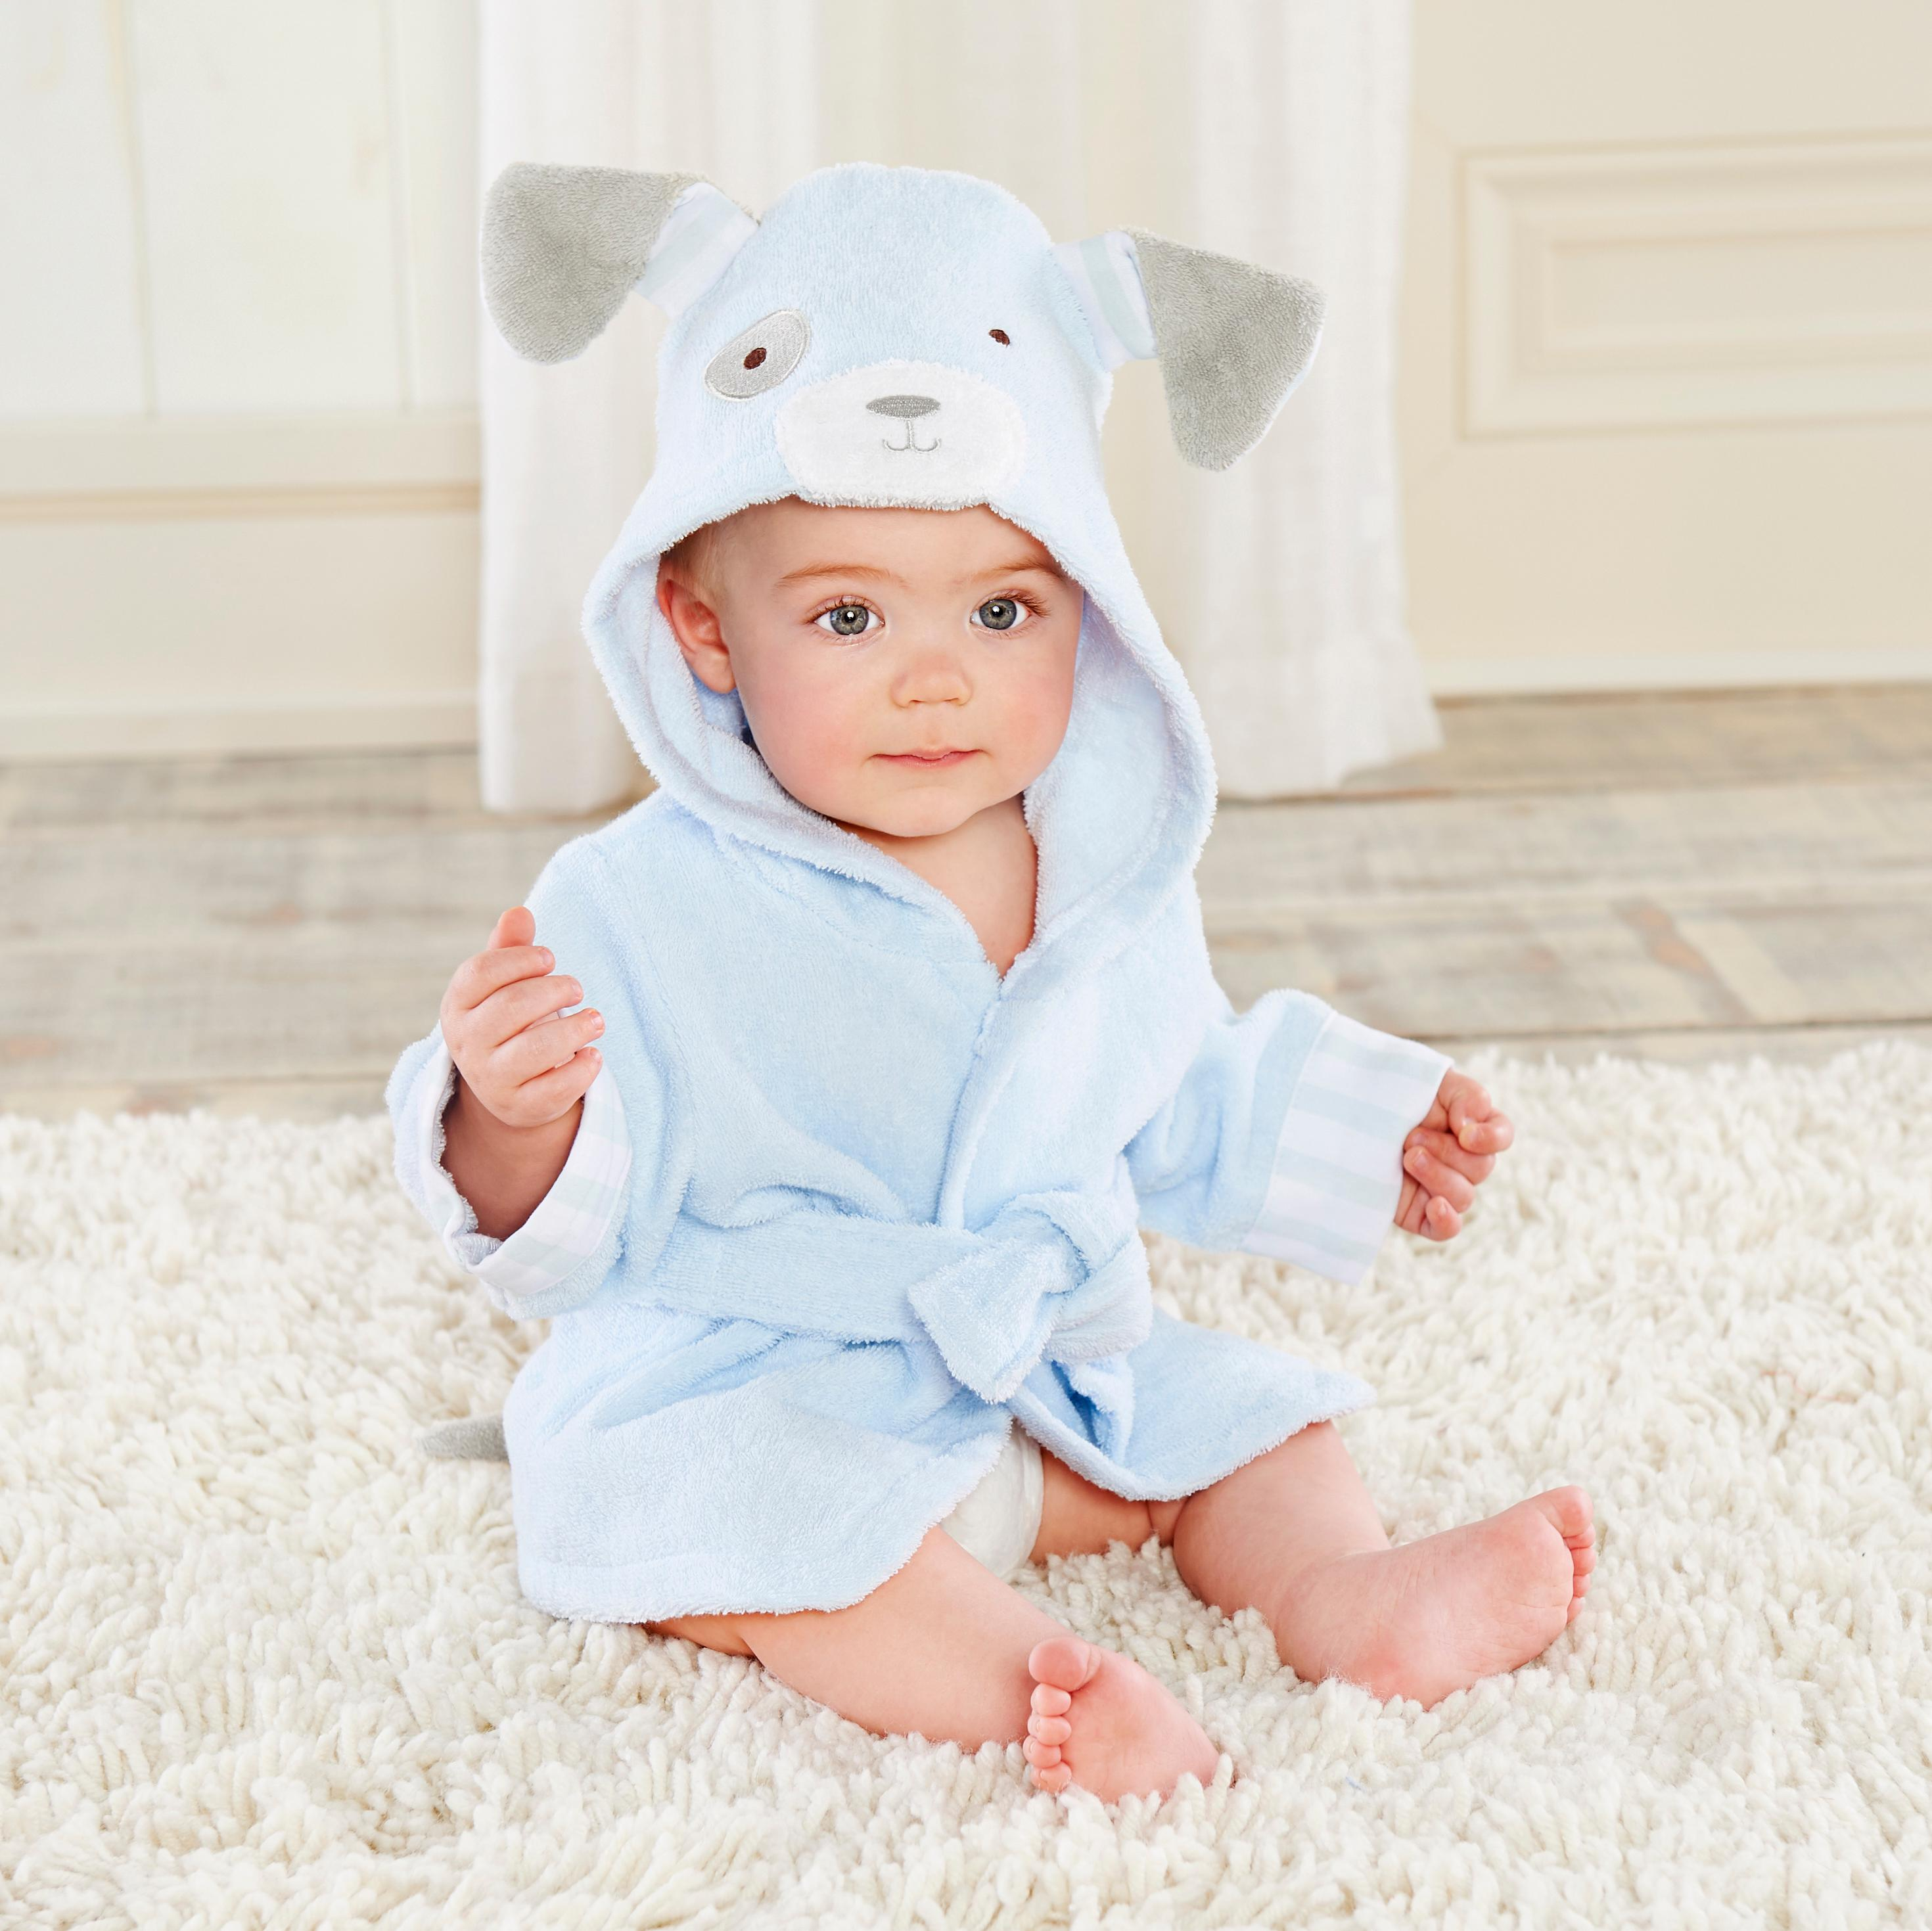 Amazon.com : Baby Aspen, Squeaky Clean Mouse Hooded Spa Robe, Gray ...